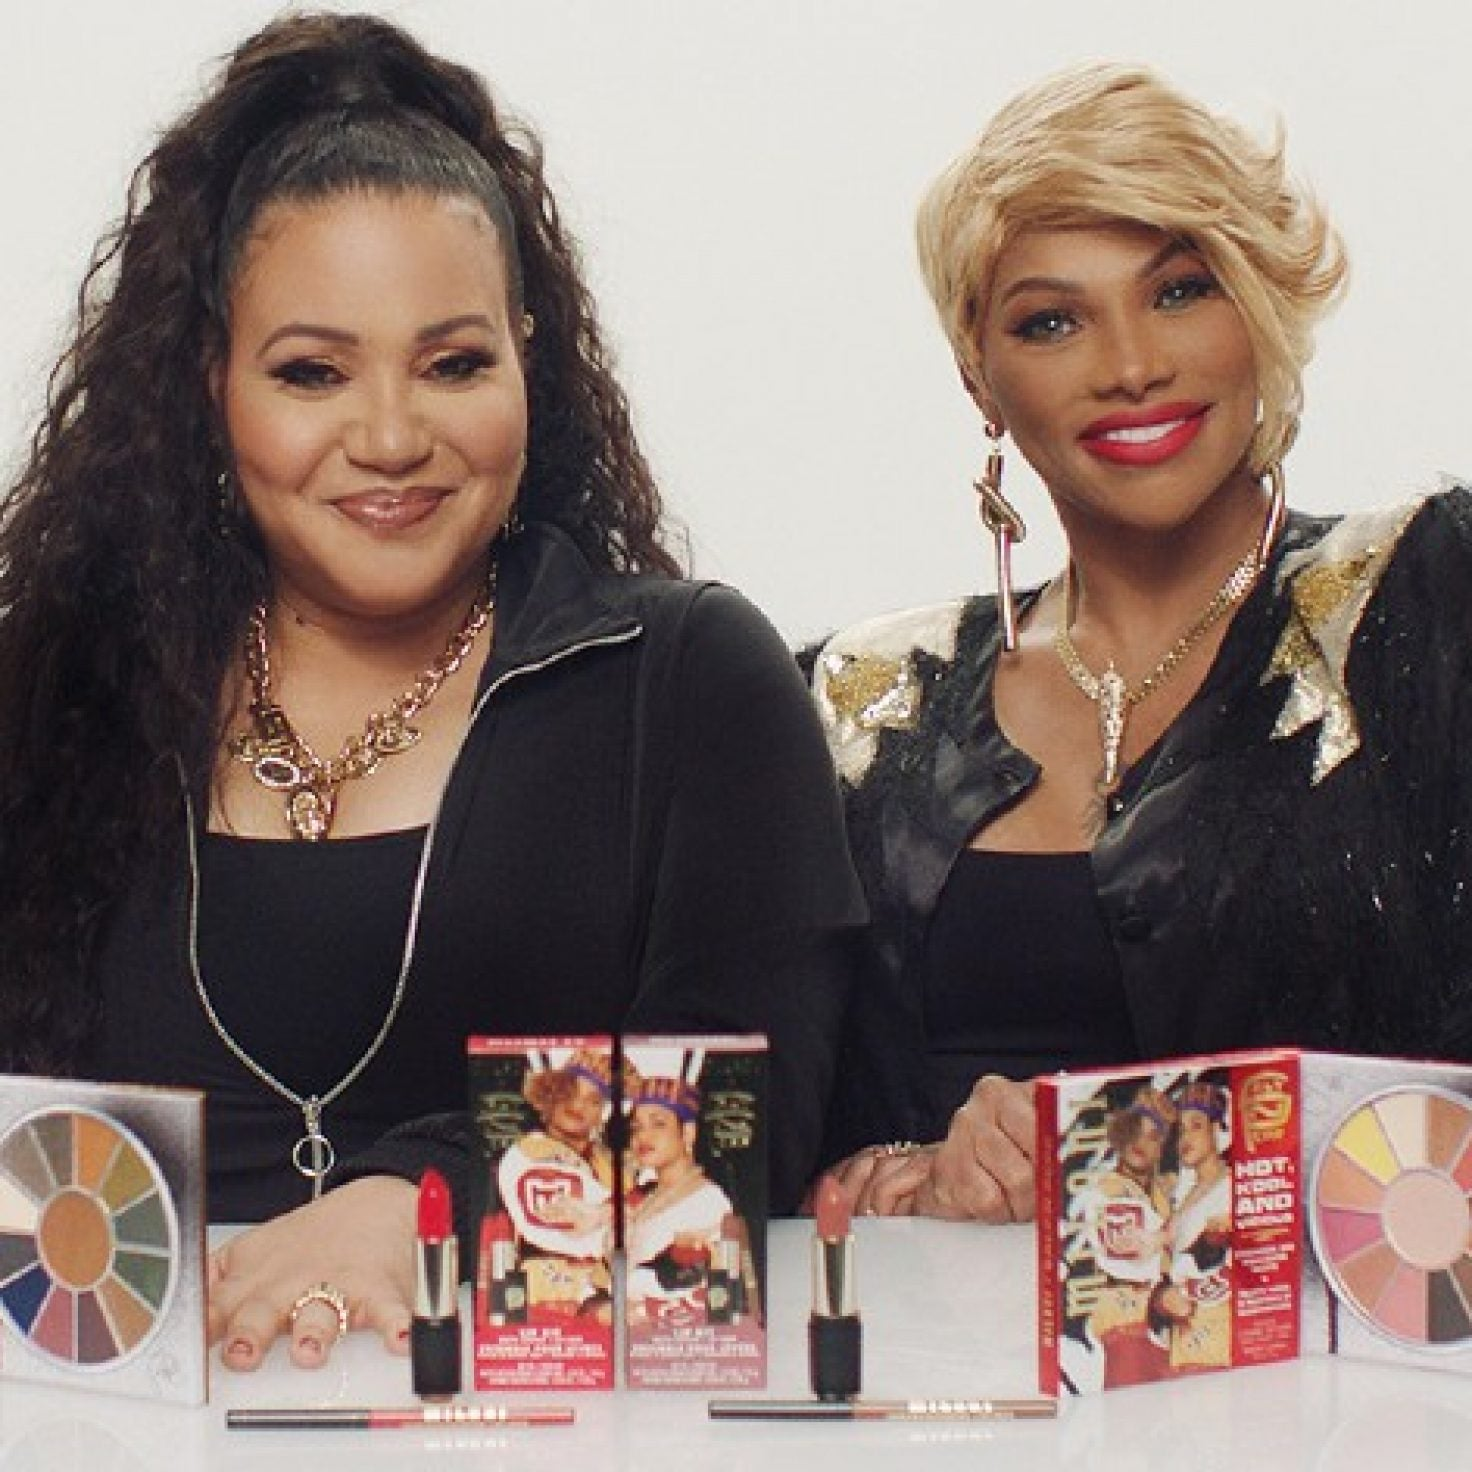 Salt-N-Pepa Teams Up With Milani For 90's-Inspired Makeup Collection